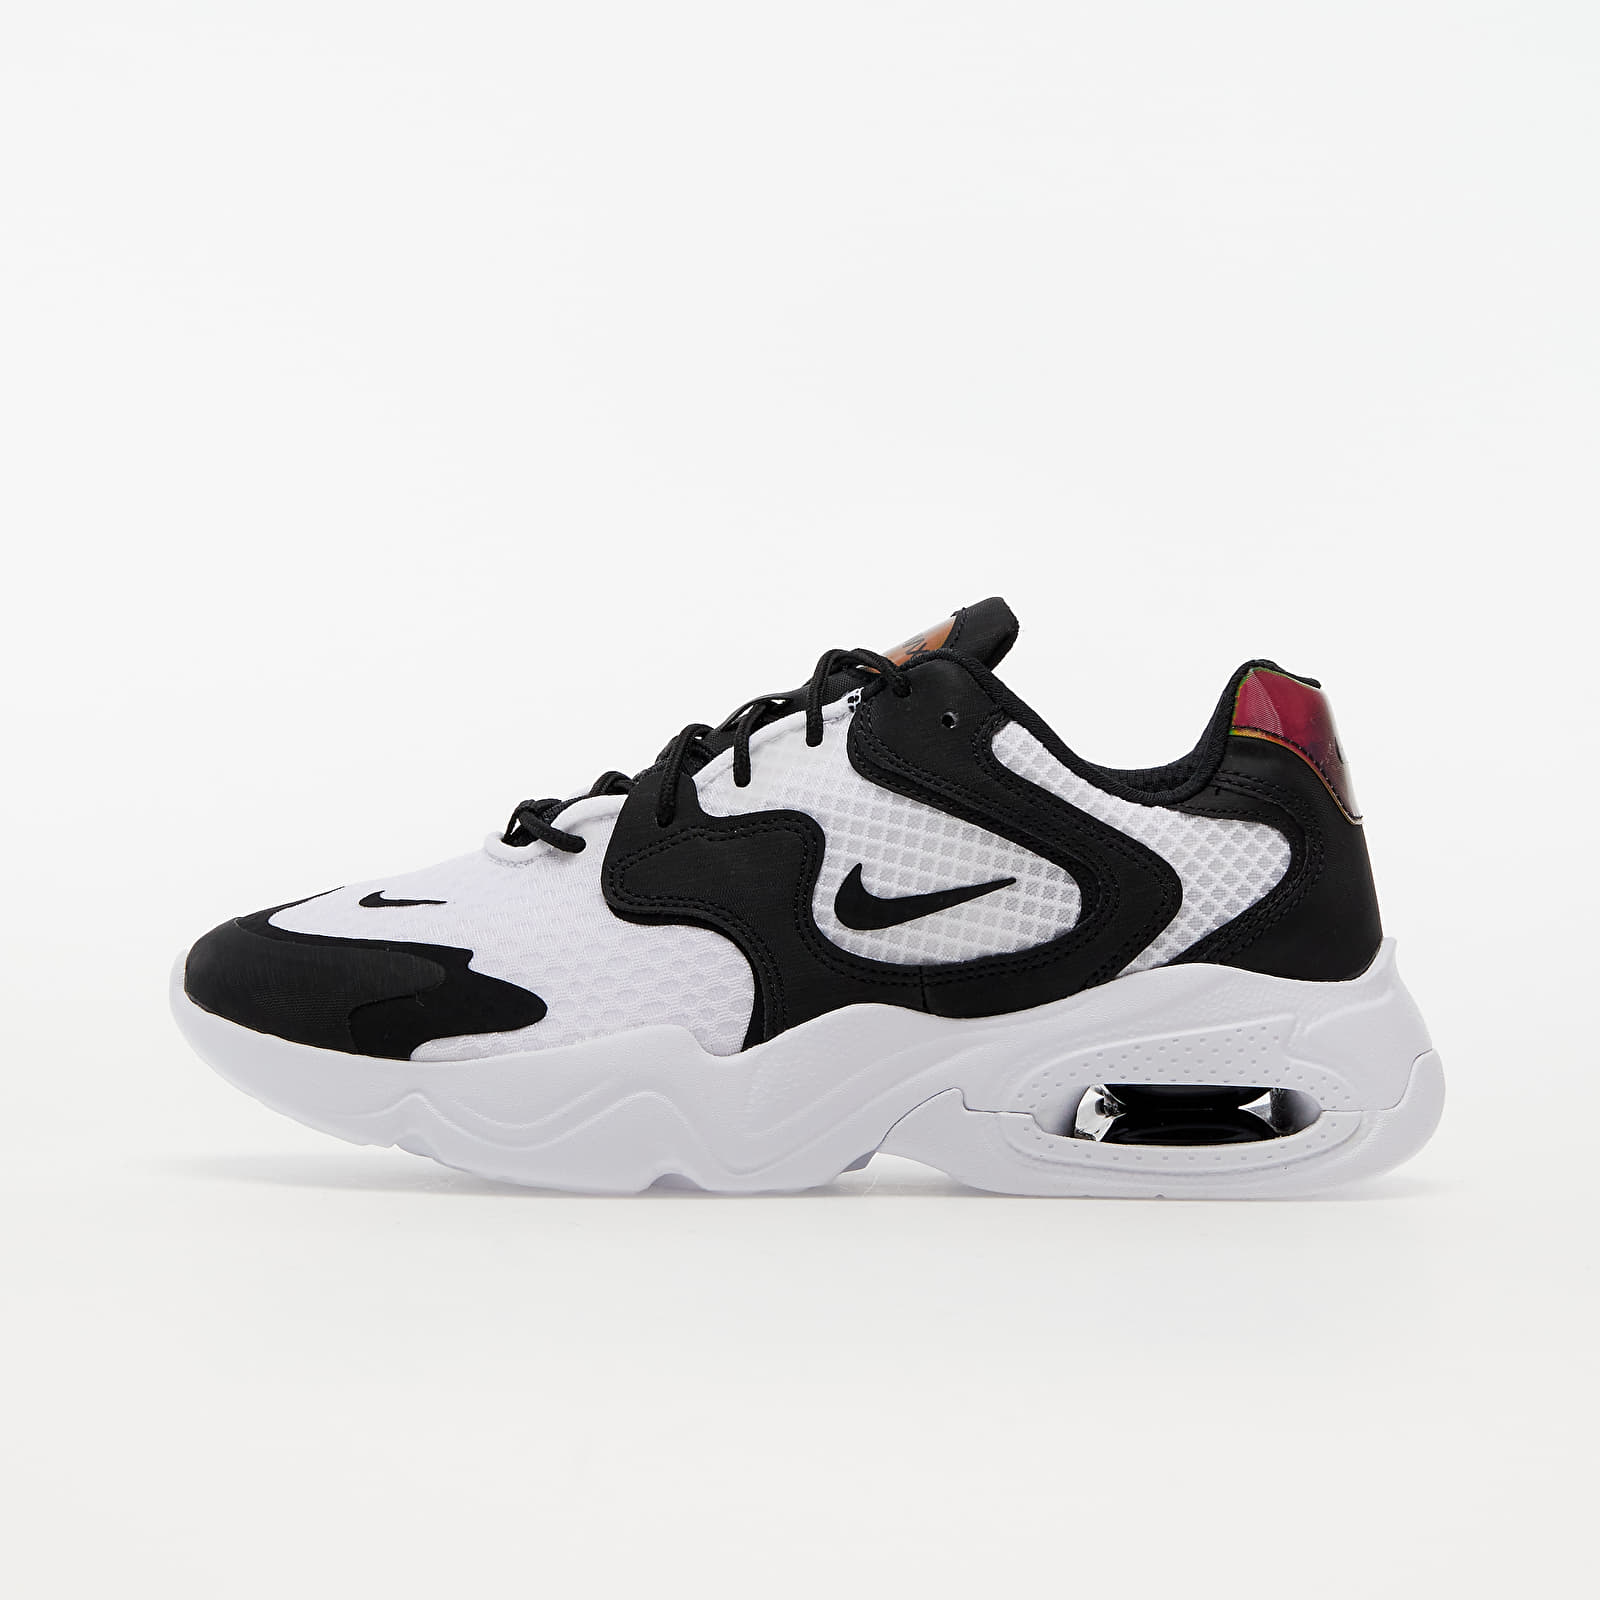 Nike W Air Max 2X White/ Black-White EUR 40.5